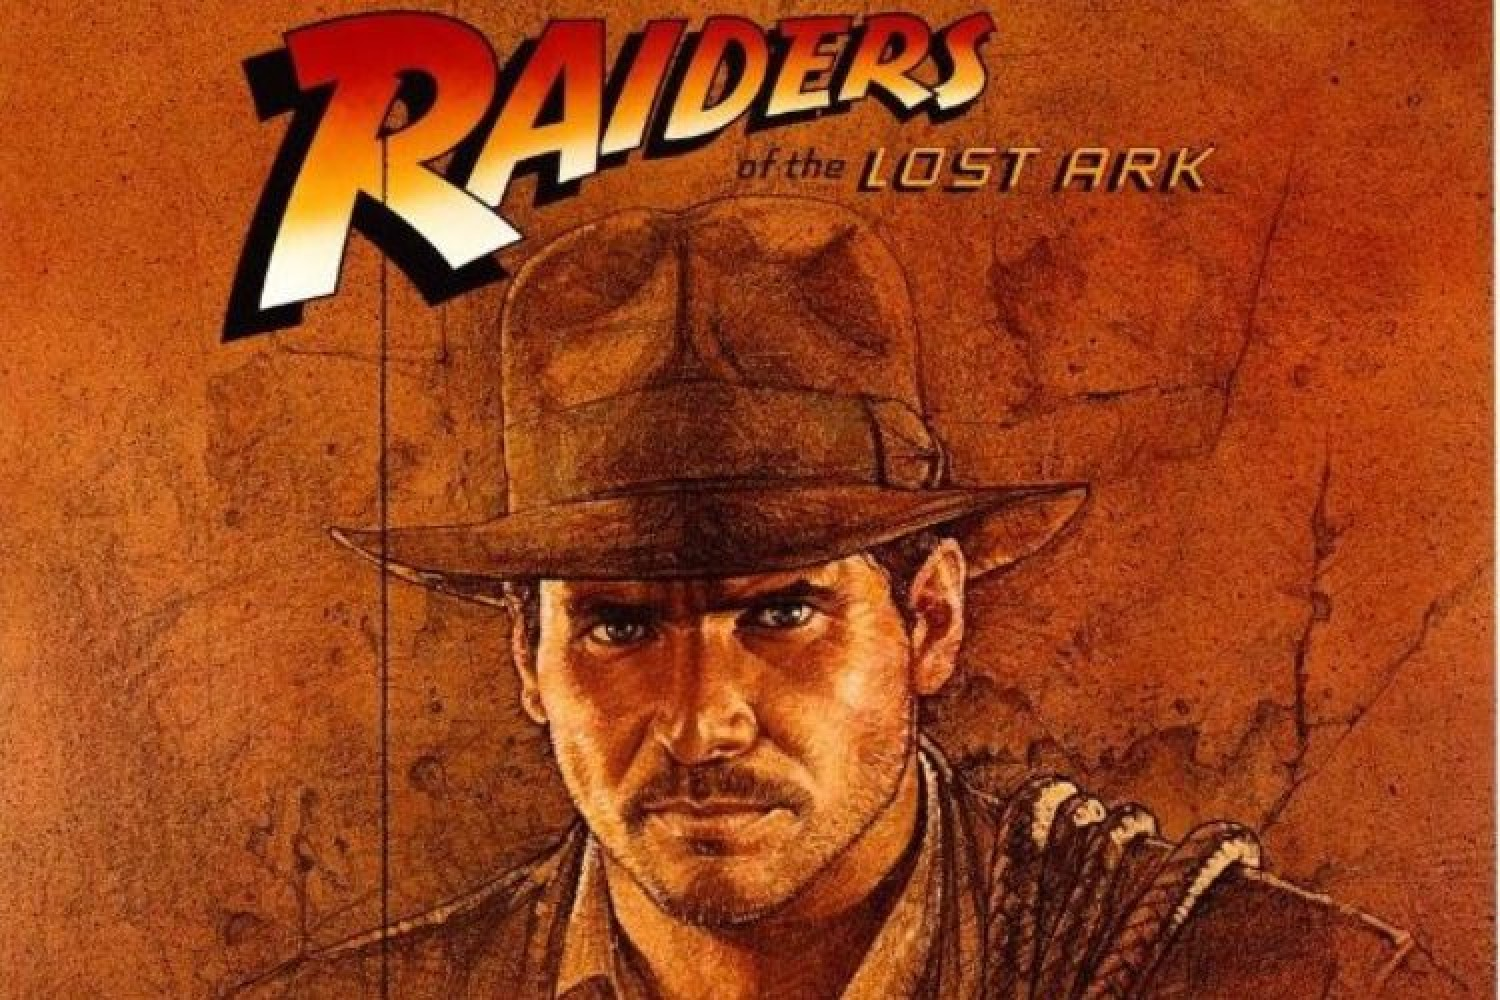 Prosegue la stagione dei grandi film musicati dal vivo: all' Auditorium di Milano arriva Indiana Jones